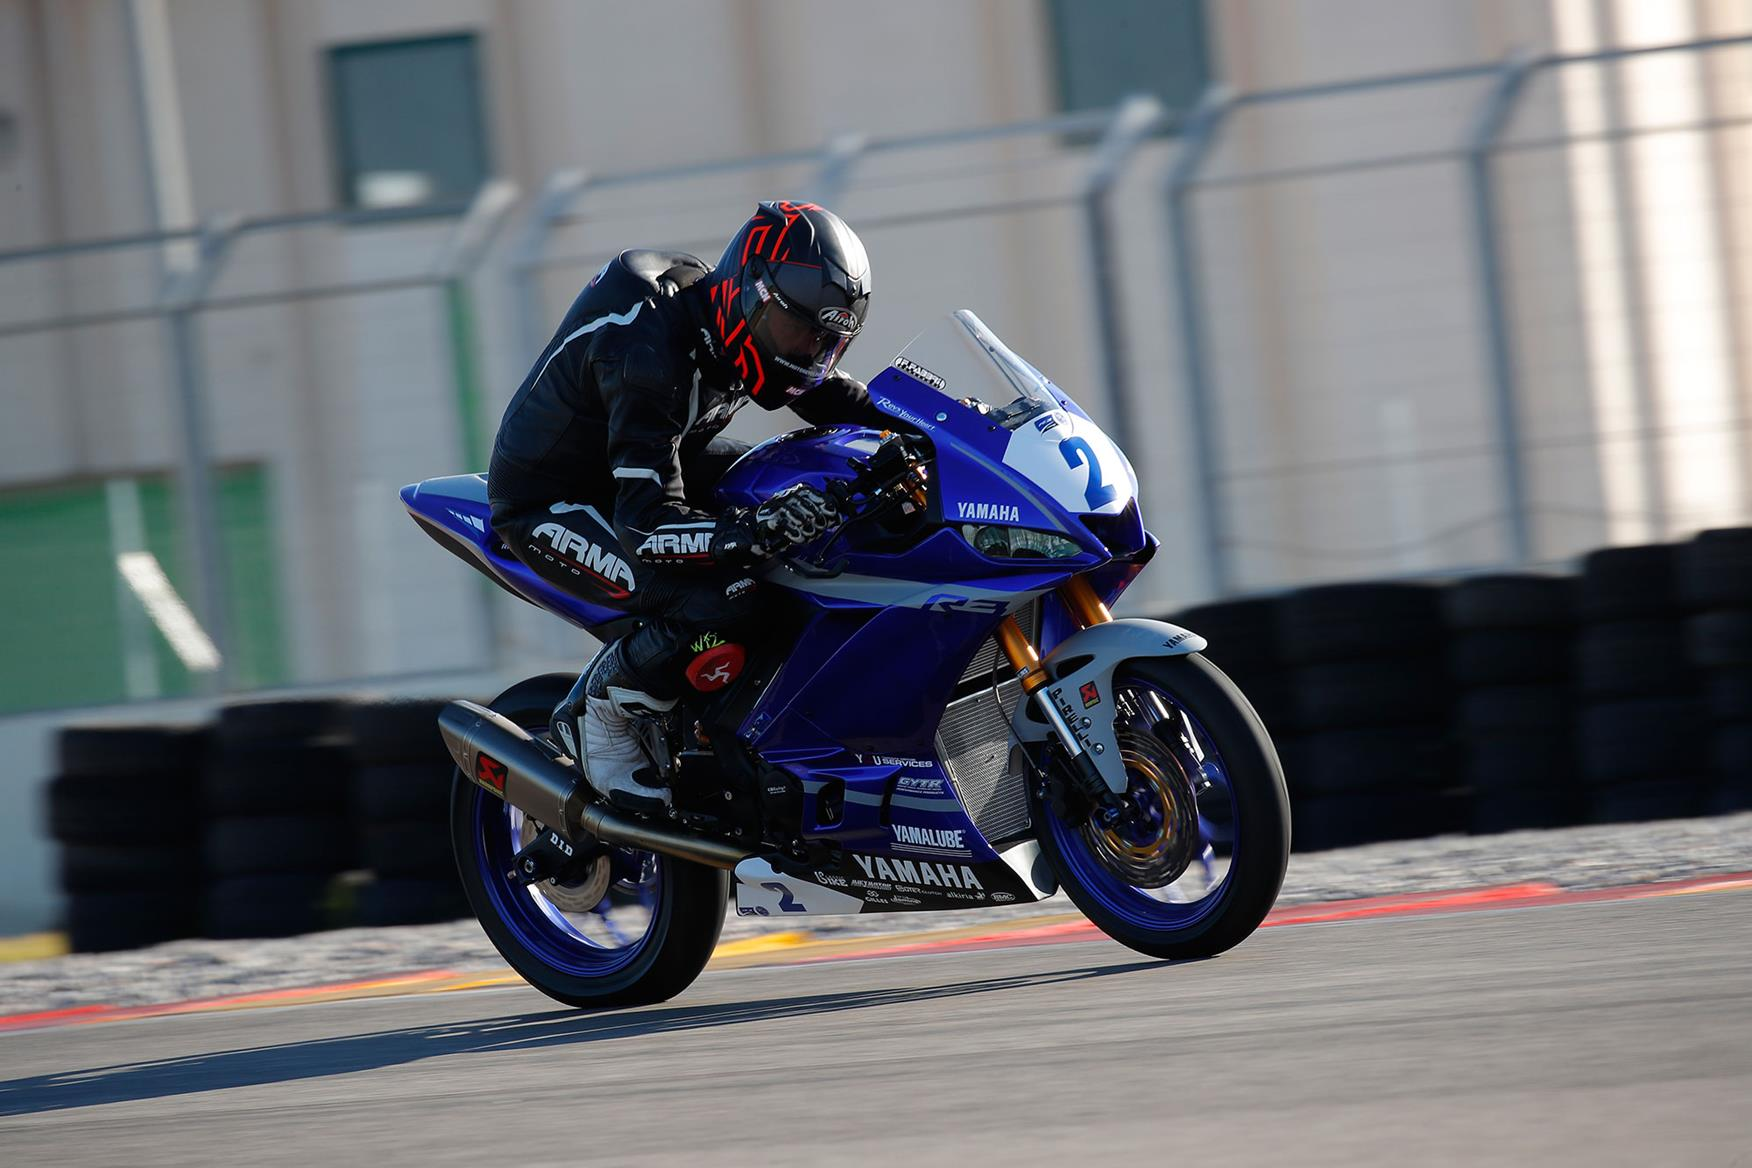 Gytr Race Kit Transforms Yamaha Yzf R3 Into Supersport 300 Racer